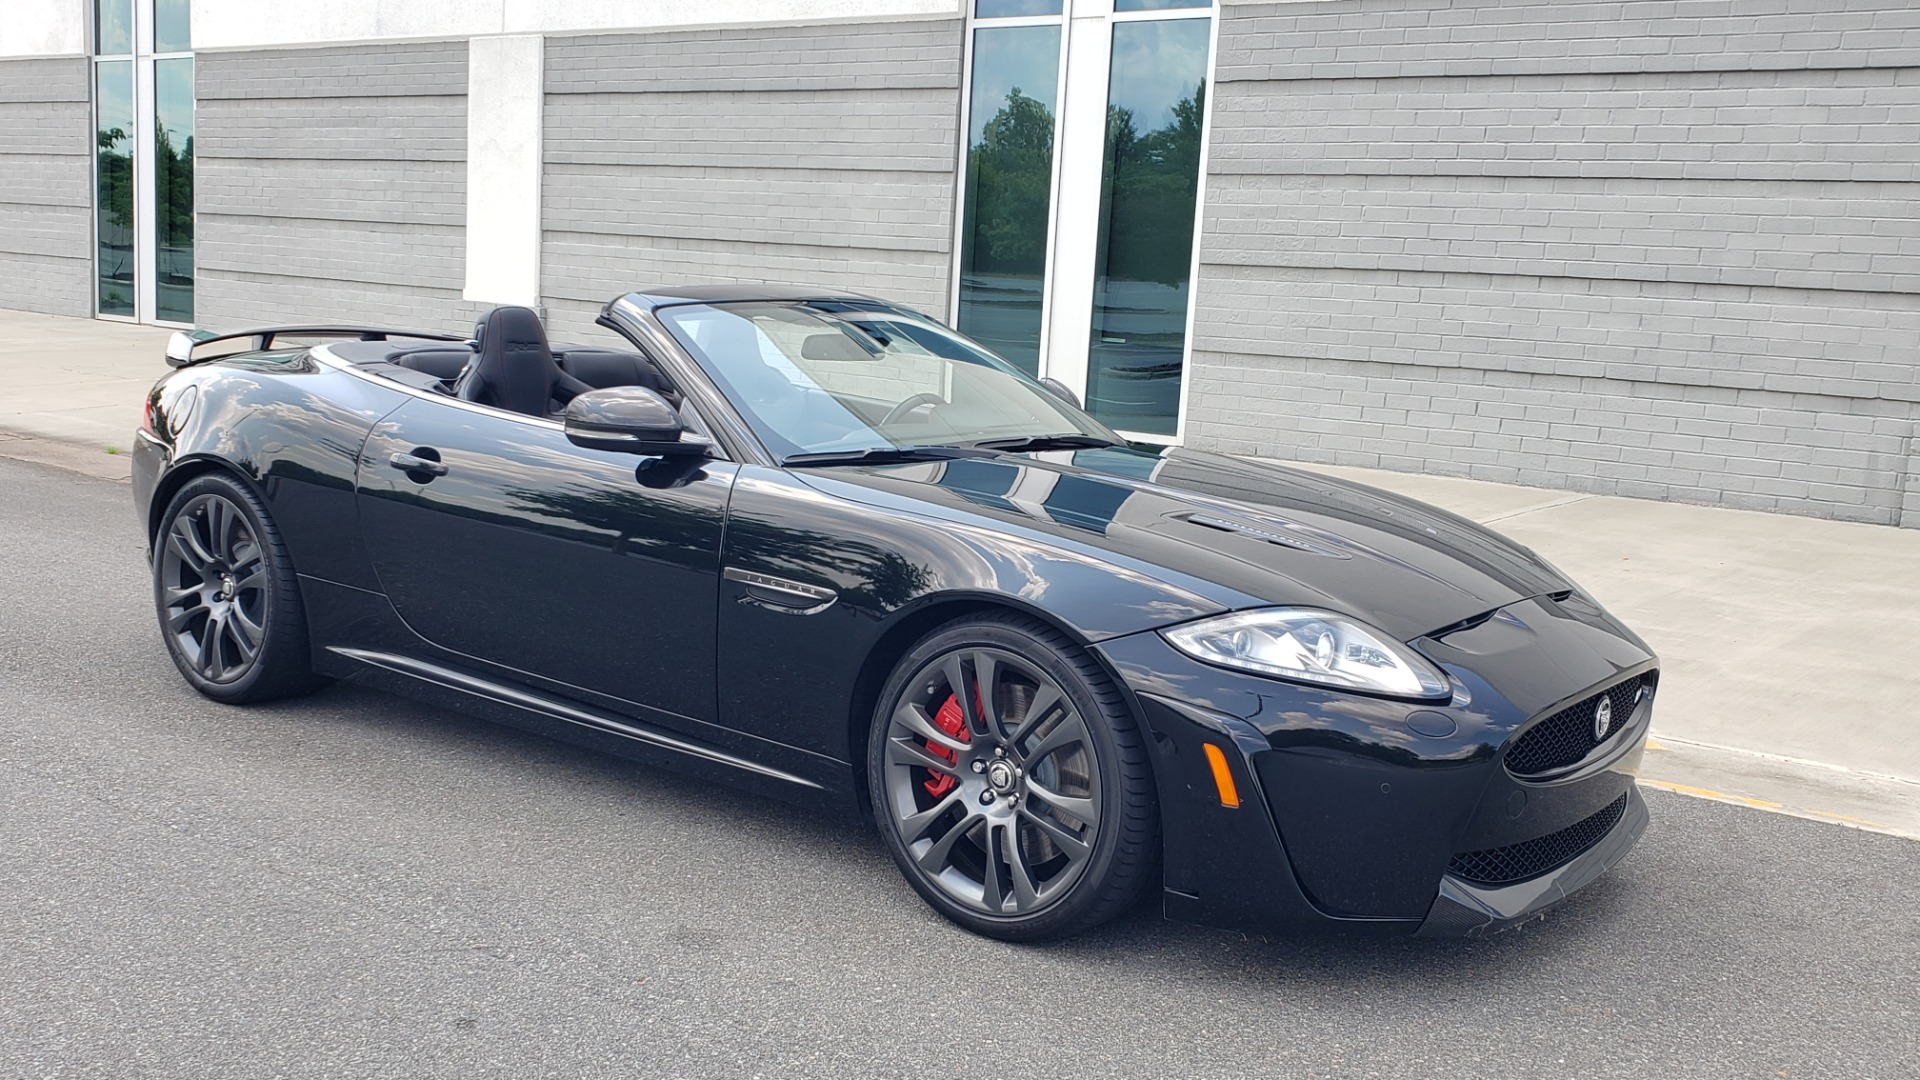 Used 2013 Jaguar XK R-S CONVERTIBLE / SC 5.0L V8 (550HP) / ZF 6-SPD AUTO / NAV / REARVIEW for sale $74,995 at Formula Imports in Charlotte NC 28227 10